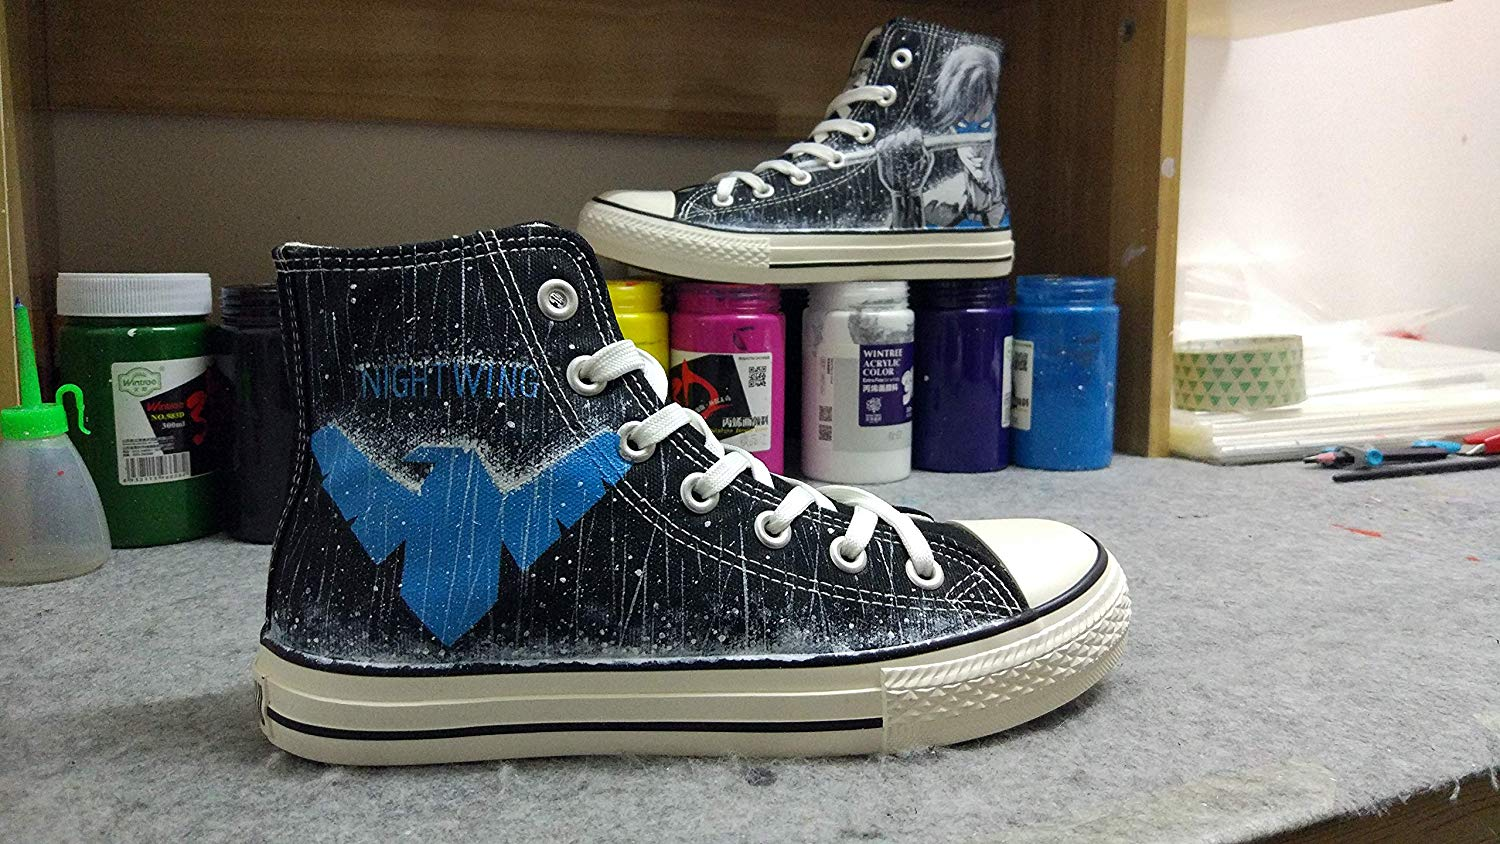 11507722c7 Get Quotations · Custom Shoes Nightwing Shoes Black Canvas Sneakers Shoes  Men Women Shoes Hand Painted Shoes Free Shipping